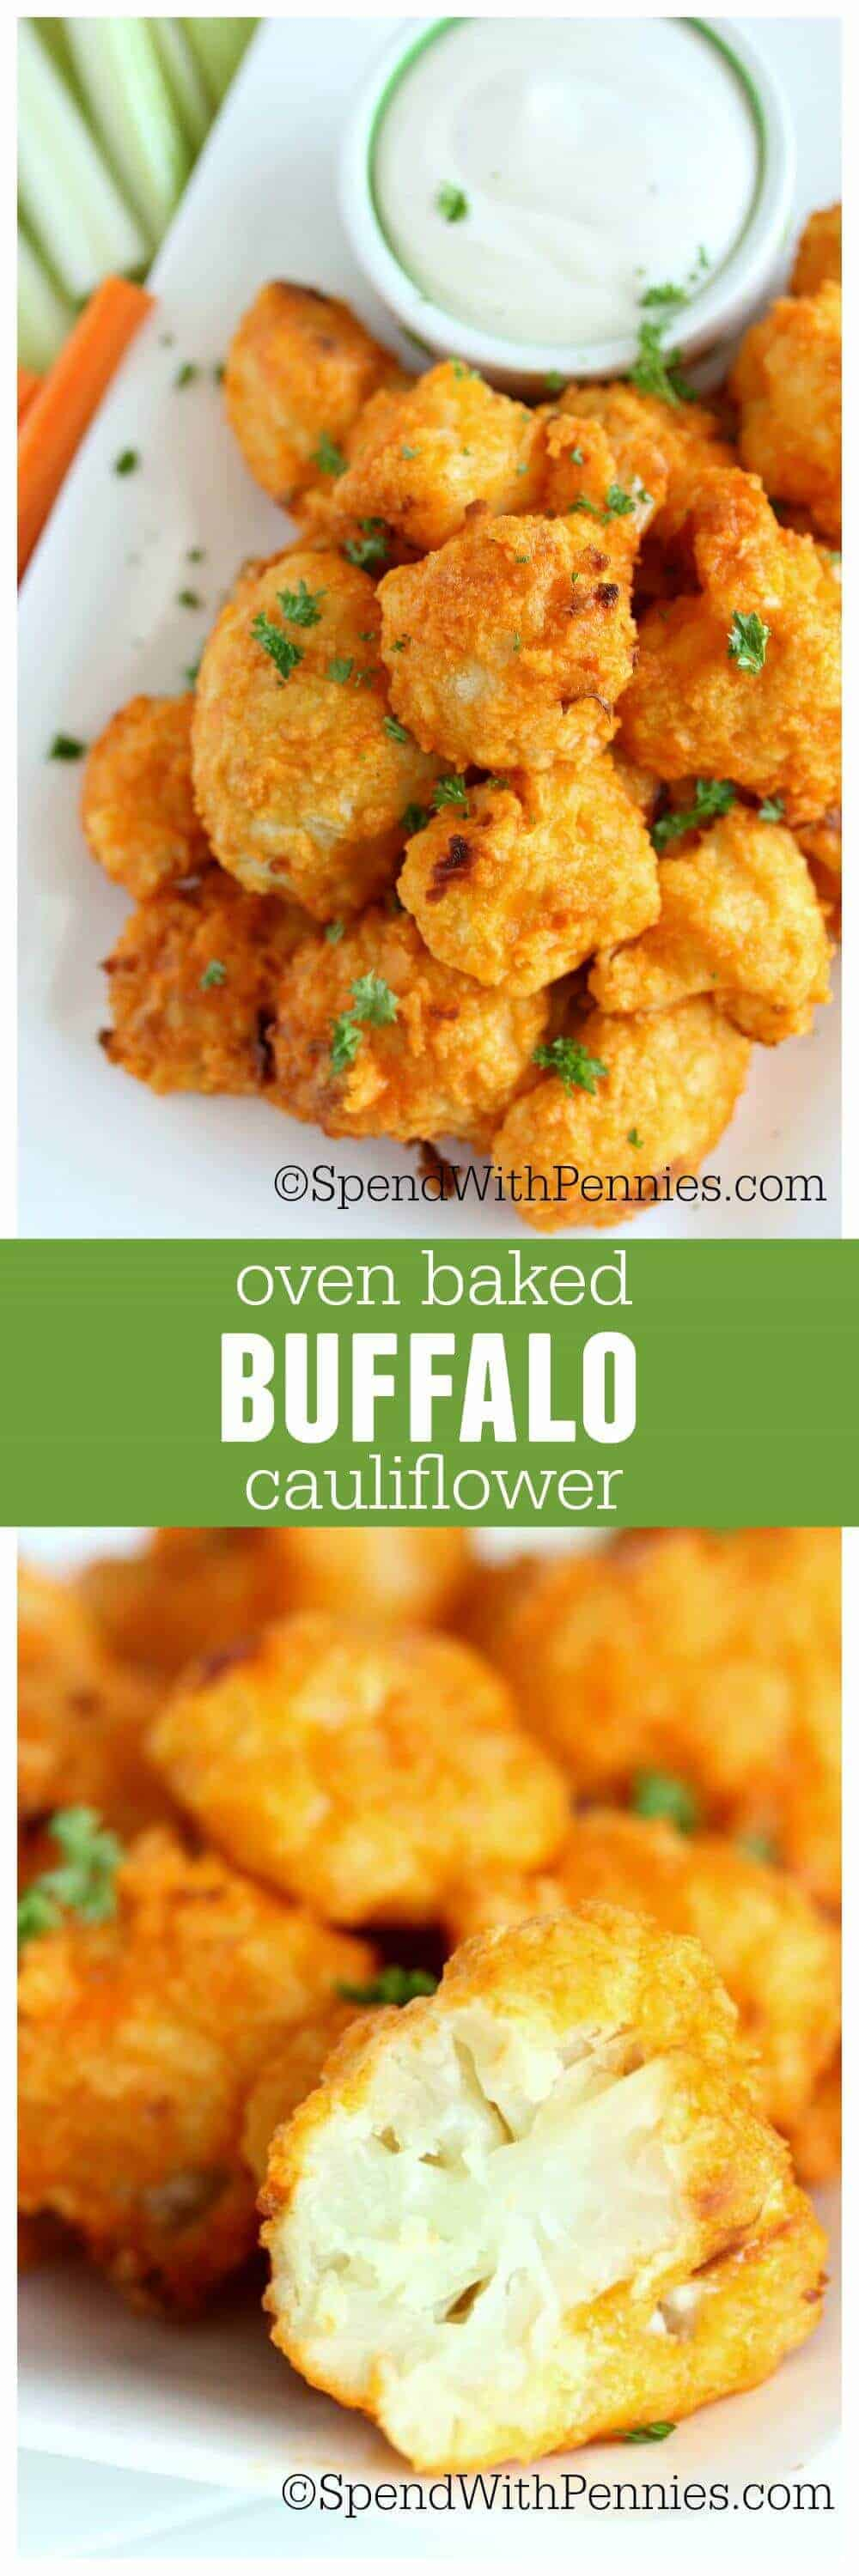 oven baked cauliflower on a plate with dip in a bowl with a title